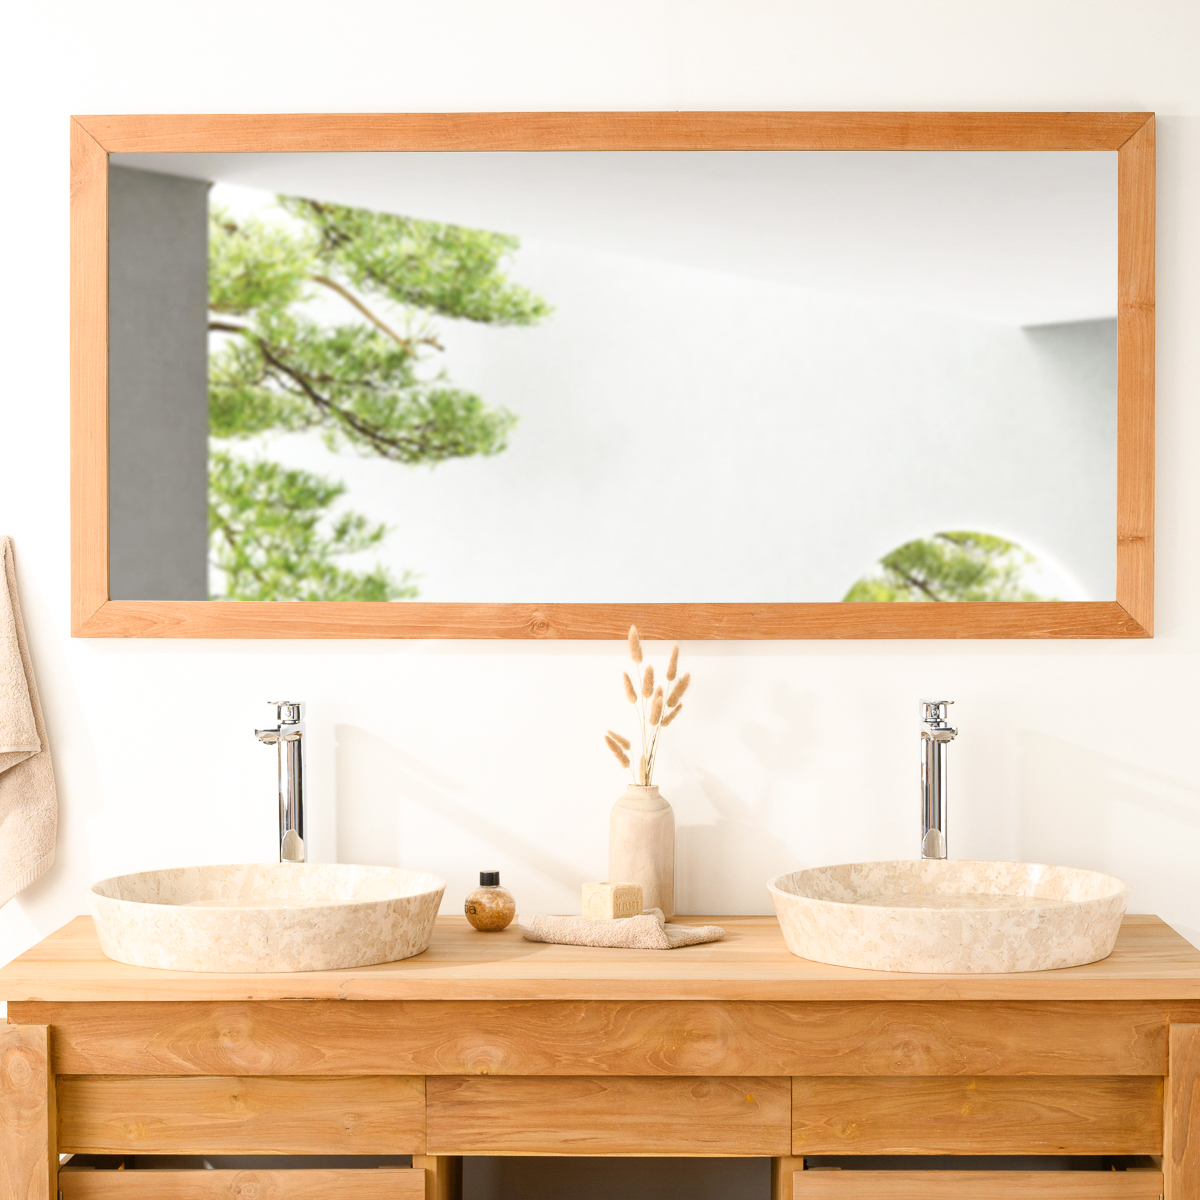 Grand miroir rectangle en teck massif 145x70 for Miroir 70 x 160